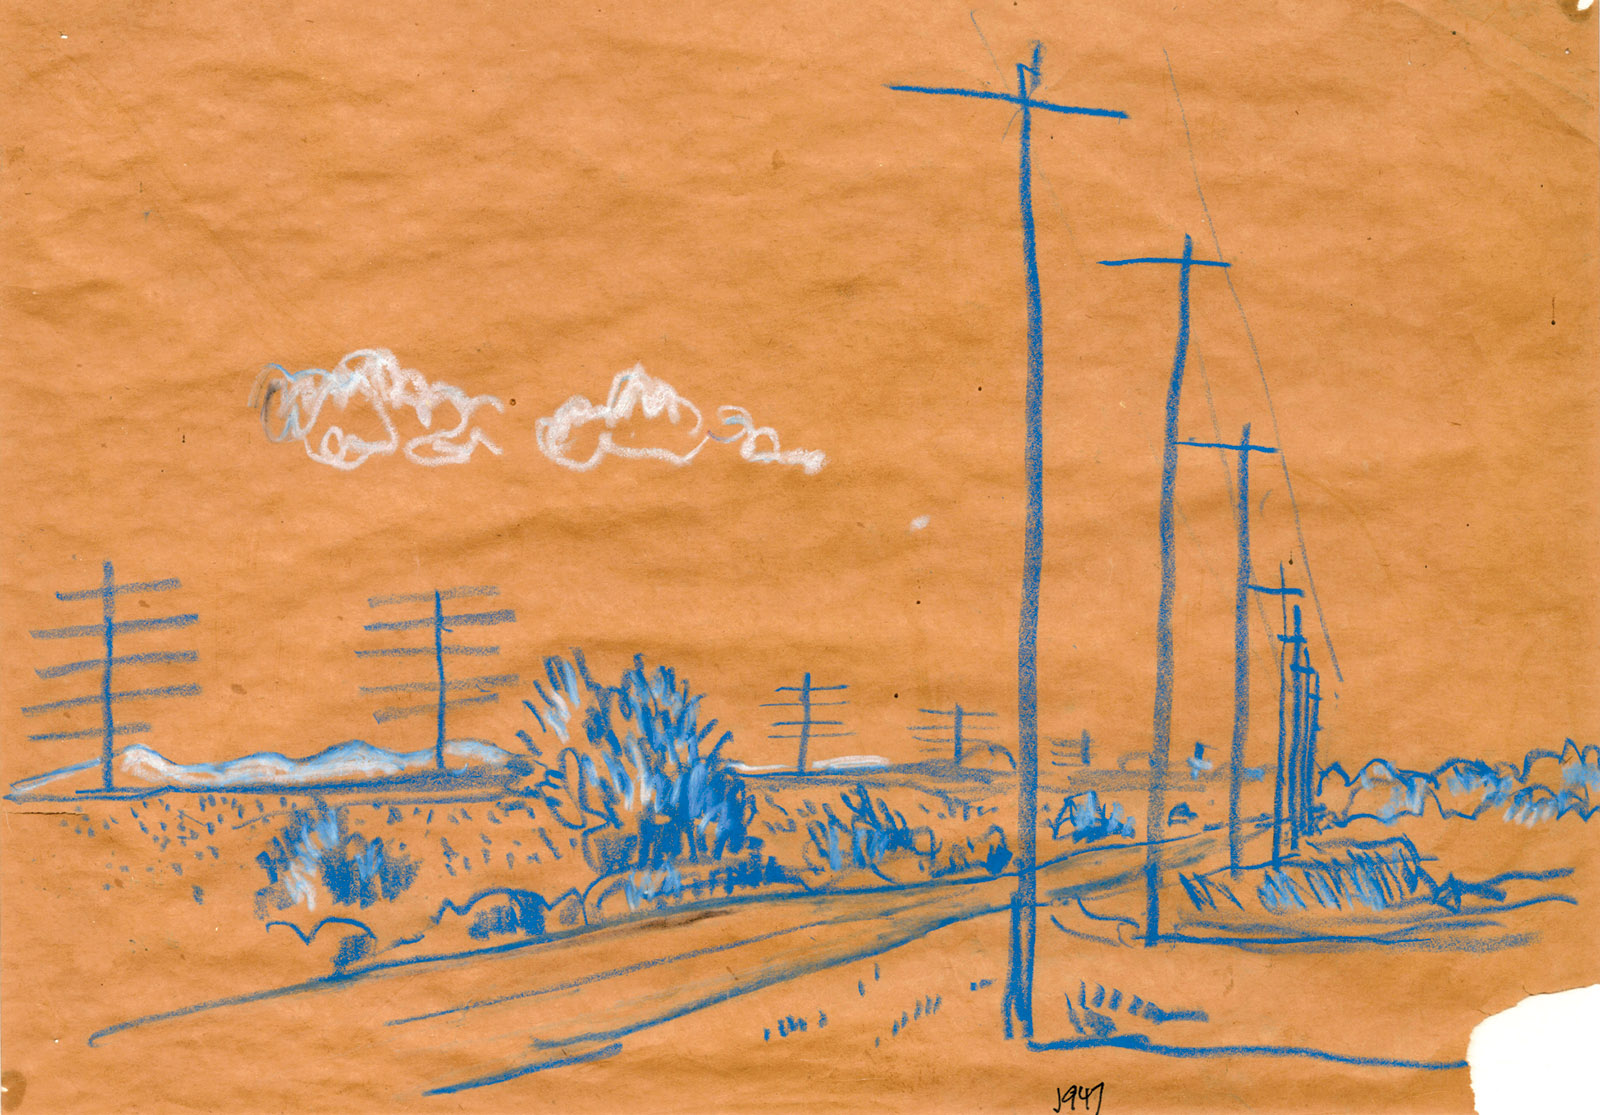 Telephone Poles; drawing by J.B. Jackson